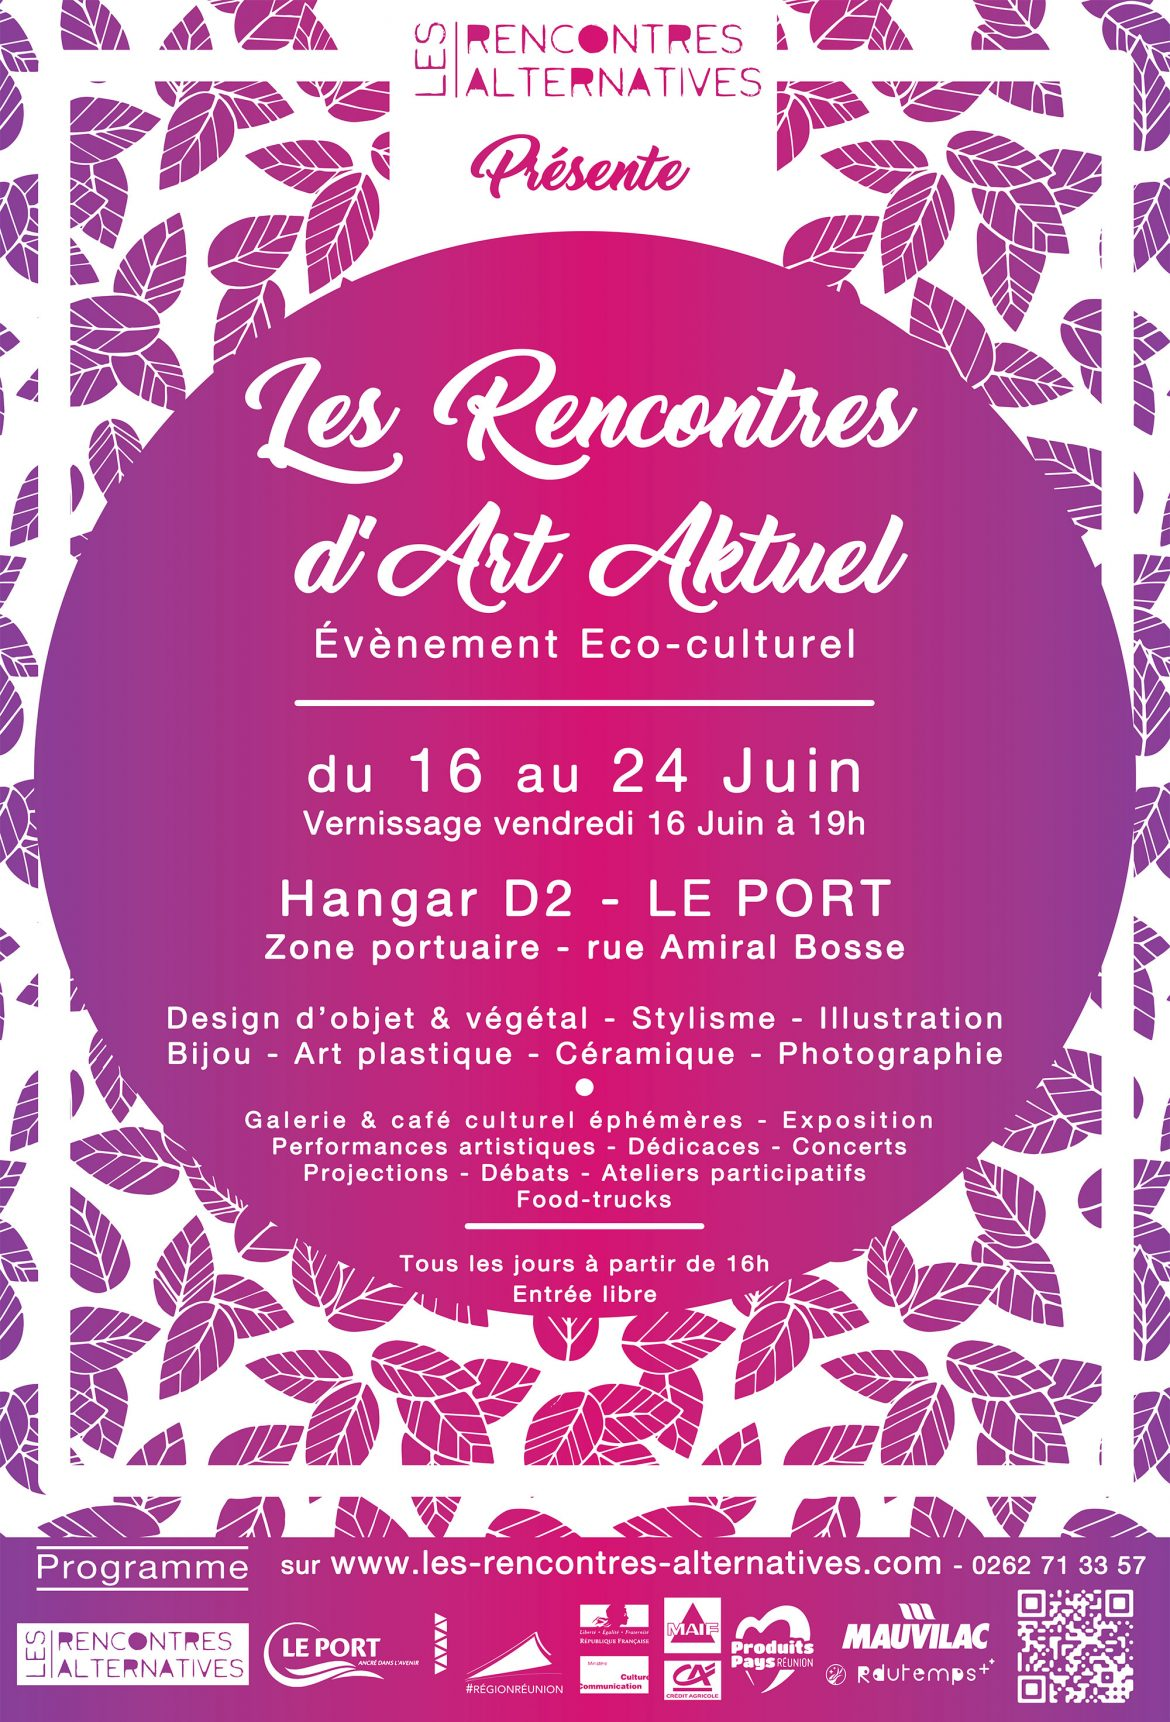 Rencontres alternatives 2017